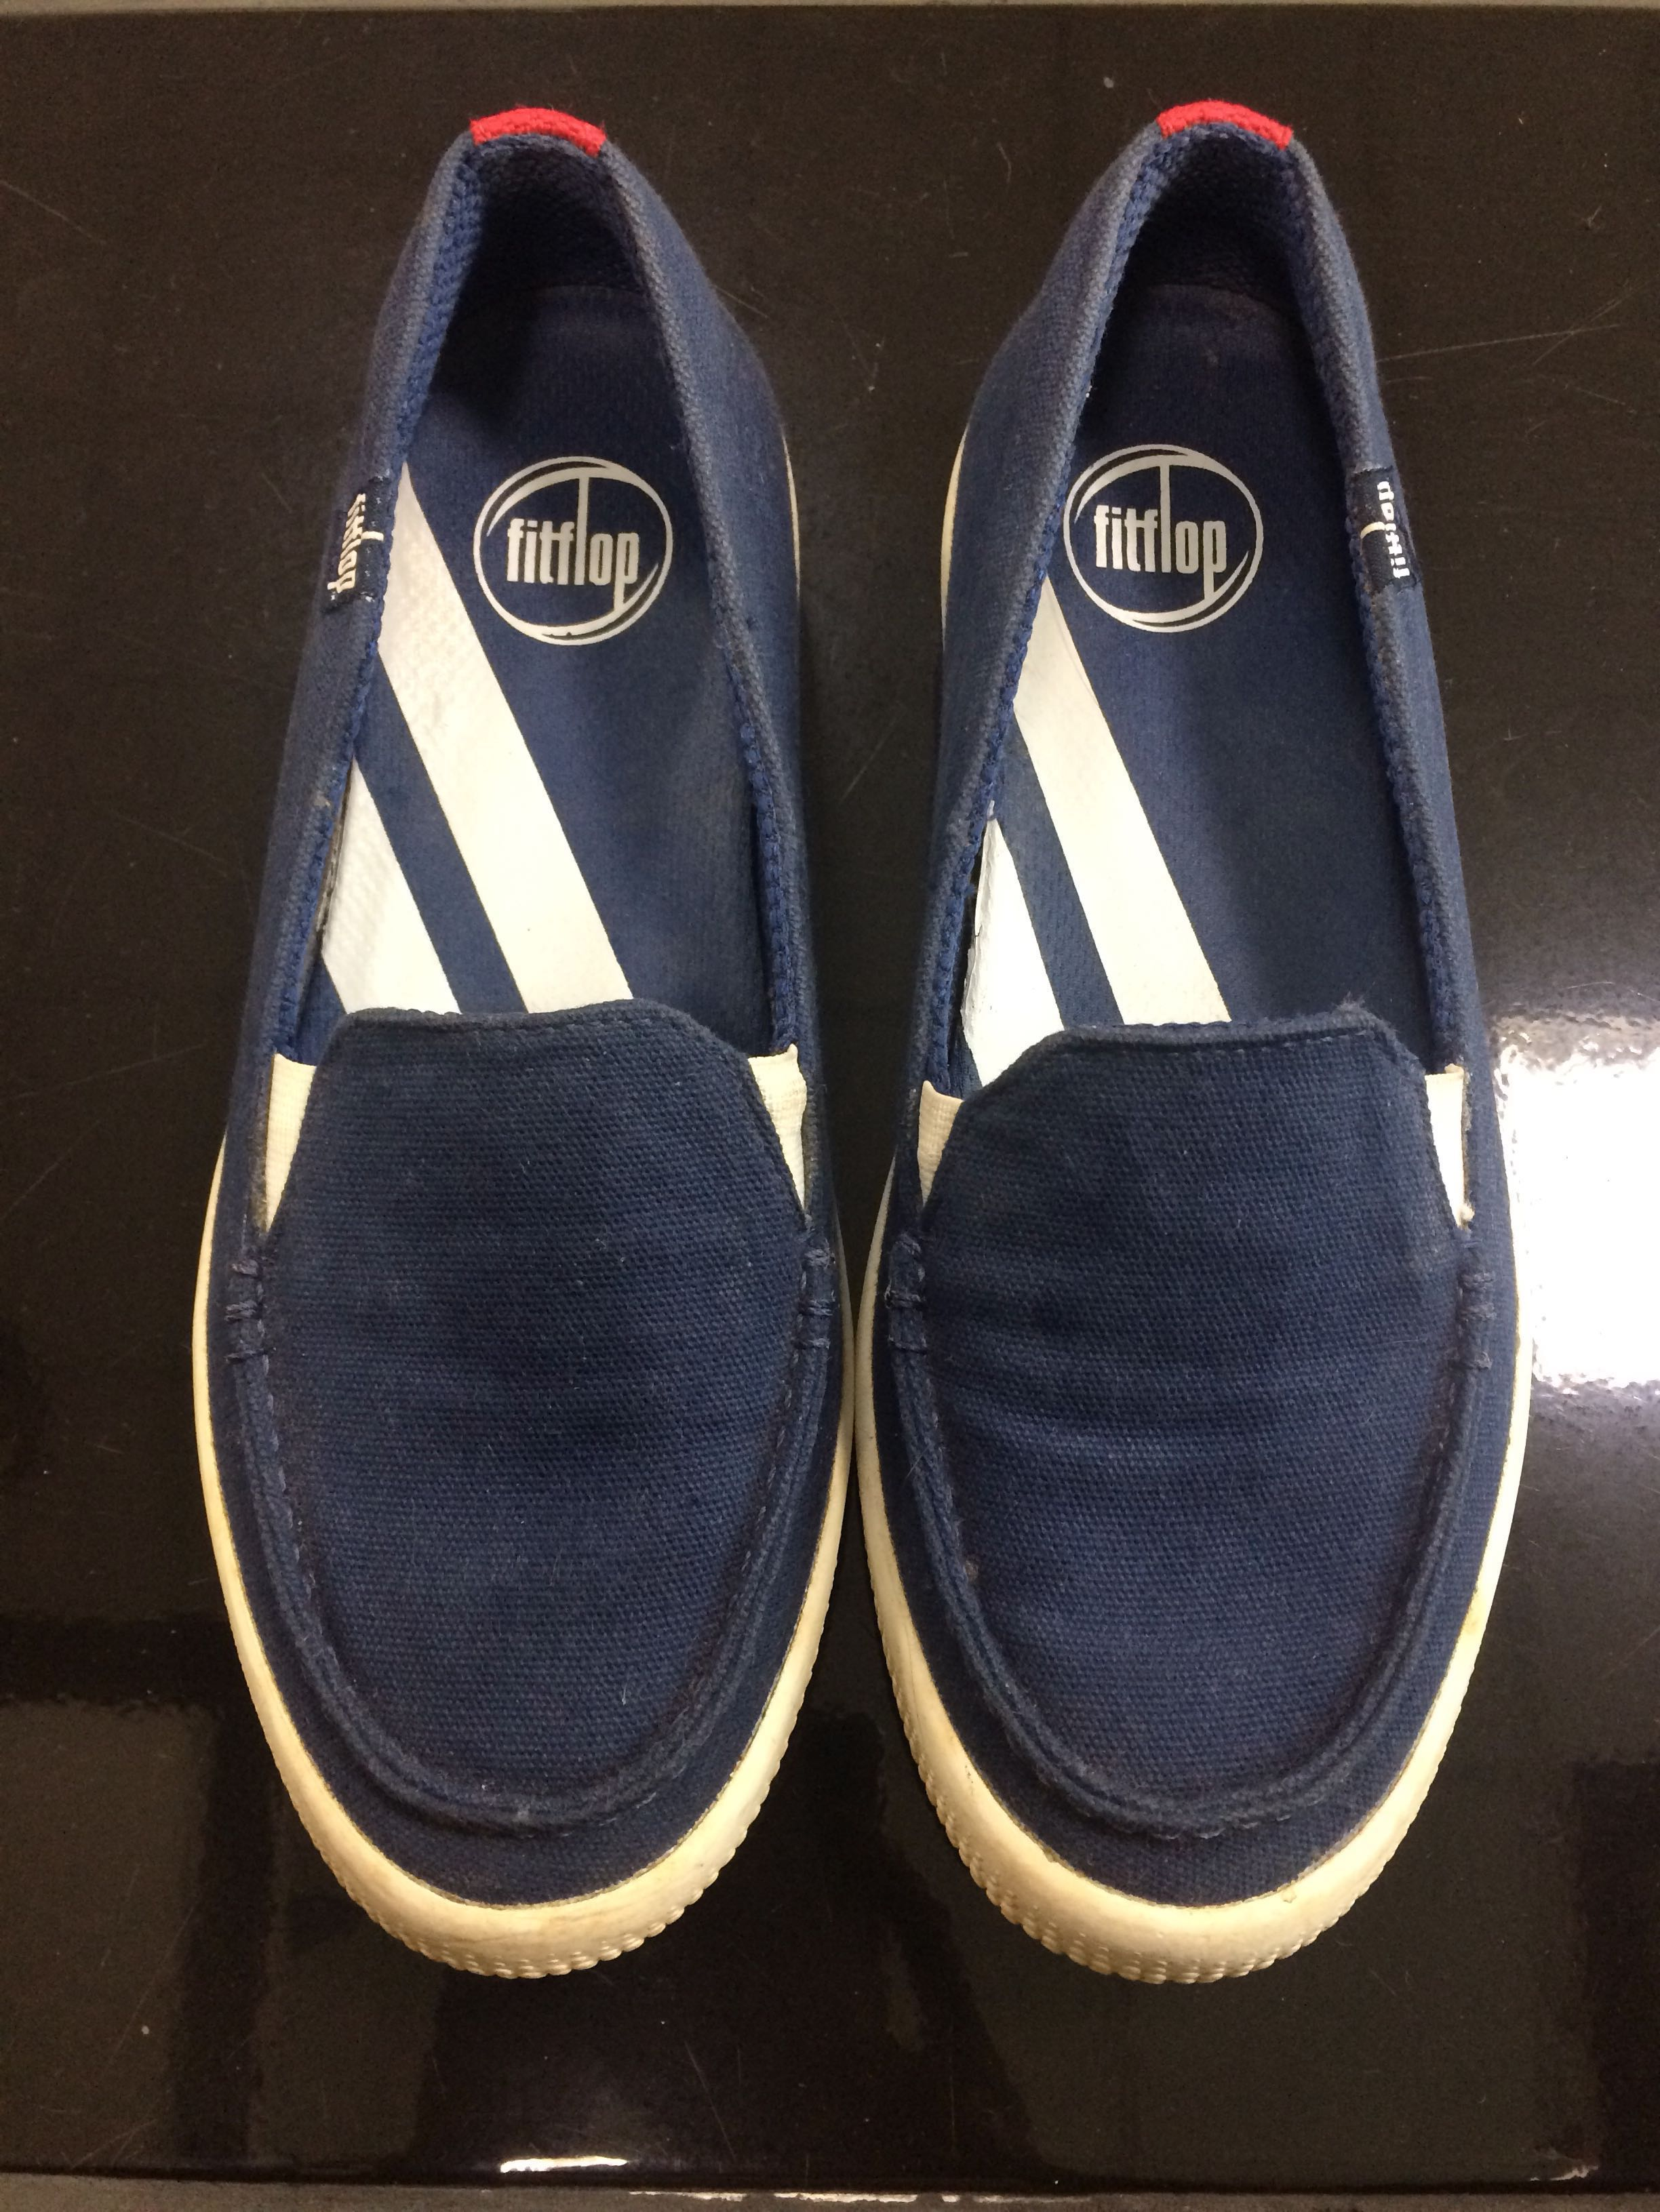 46c9d24f8b8c Fitflop Sunny in French Navy Canvas Loafers